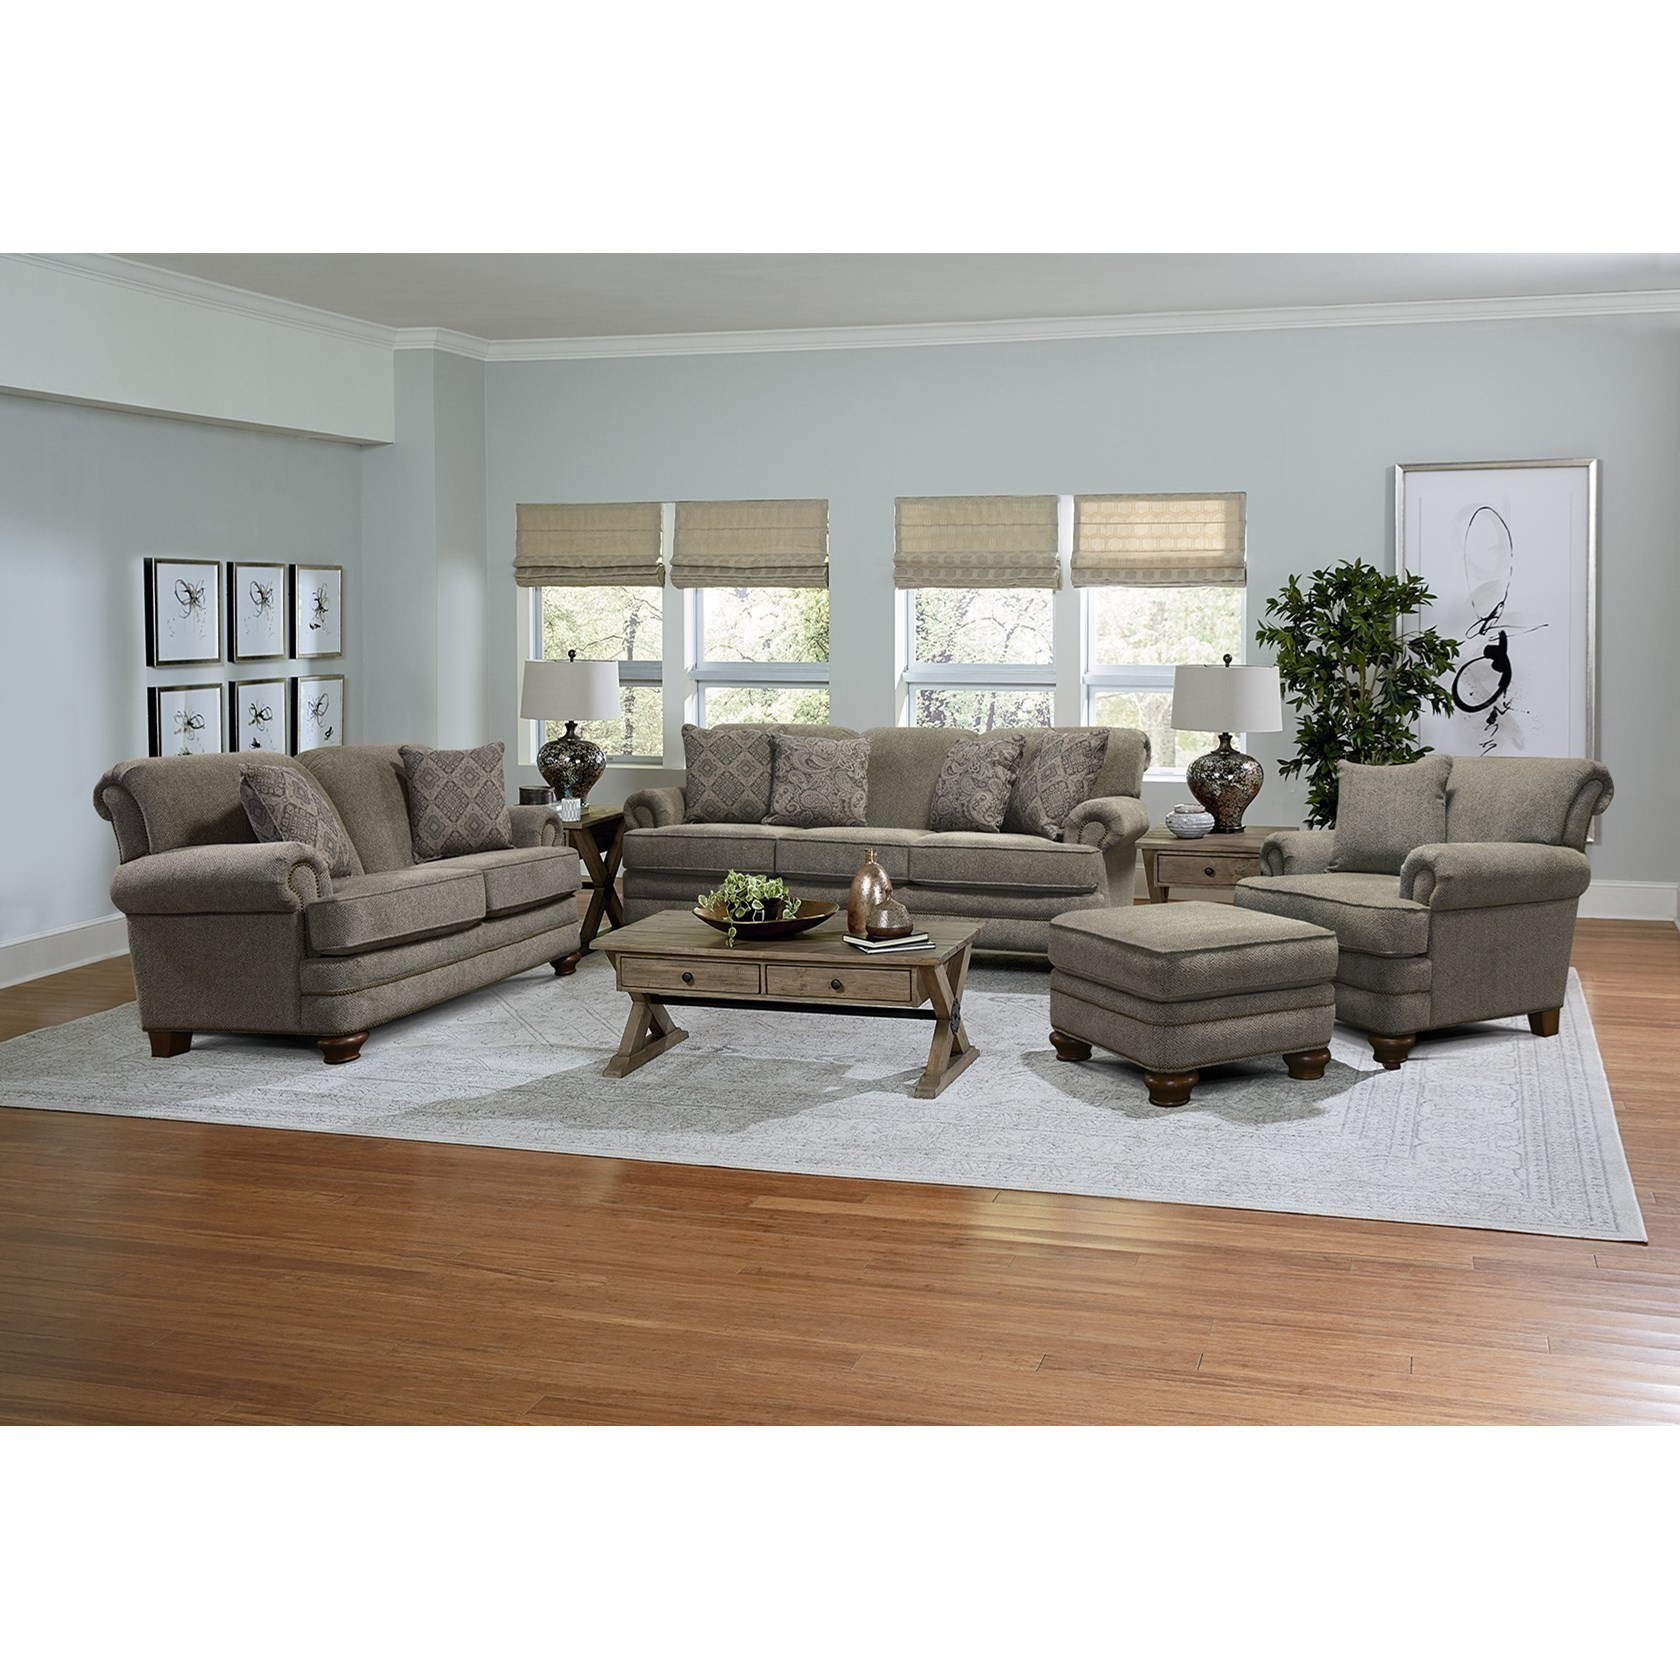 England Reed Traditional Loveseat With Nailhead Trim